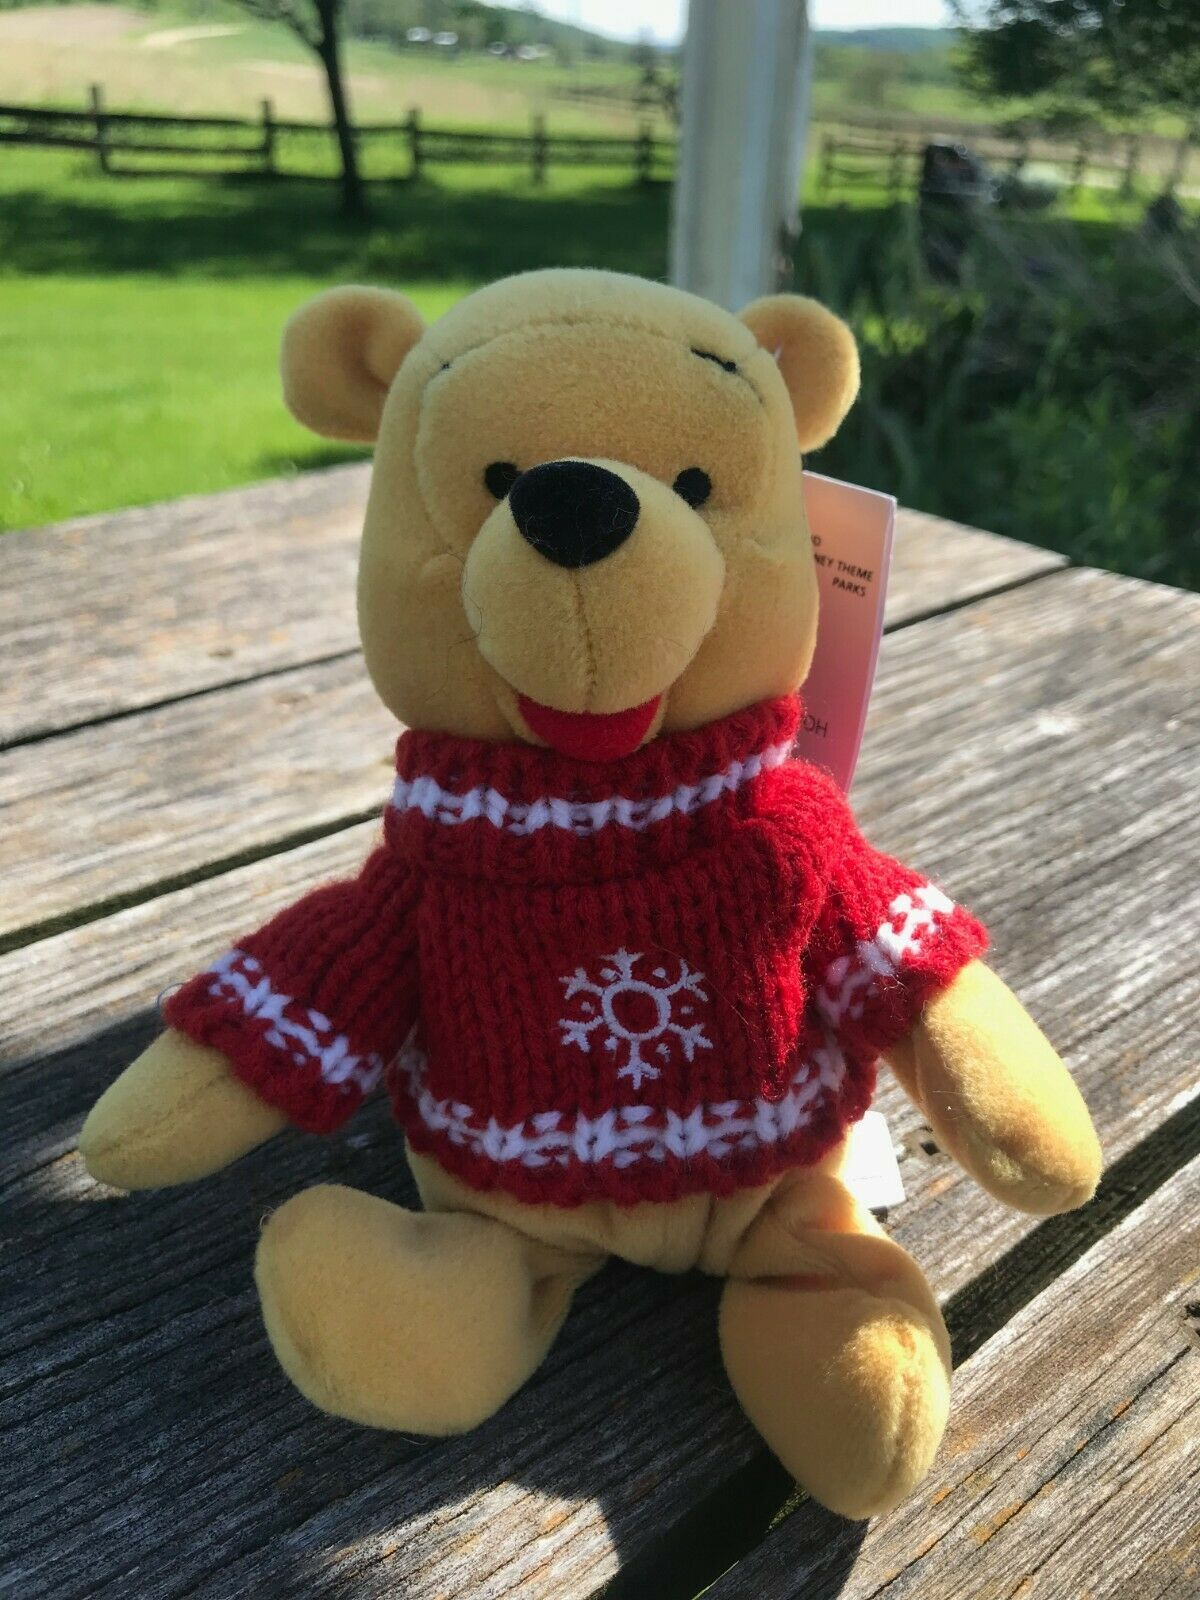 Primary image for Disney Store Small Snowflake Sweater Winnie The POOH Plush Stuffed Animal  - 7.5